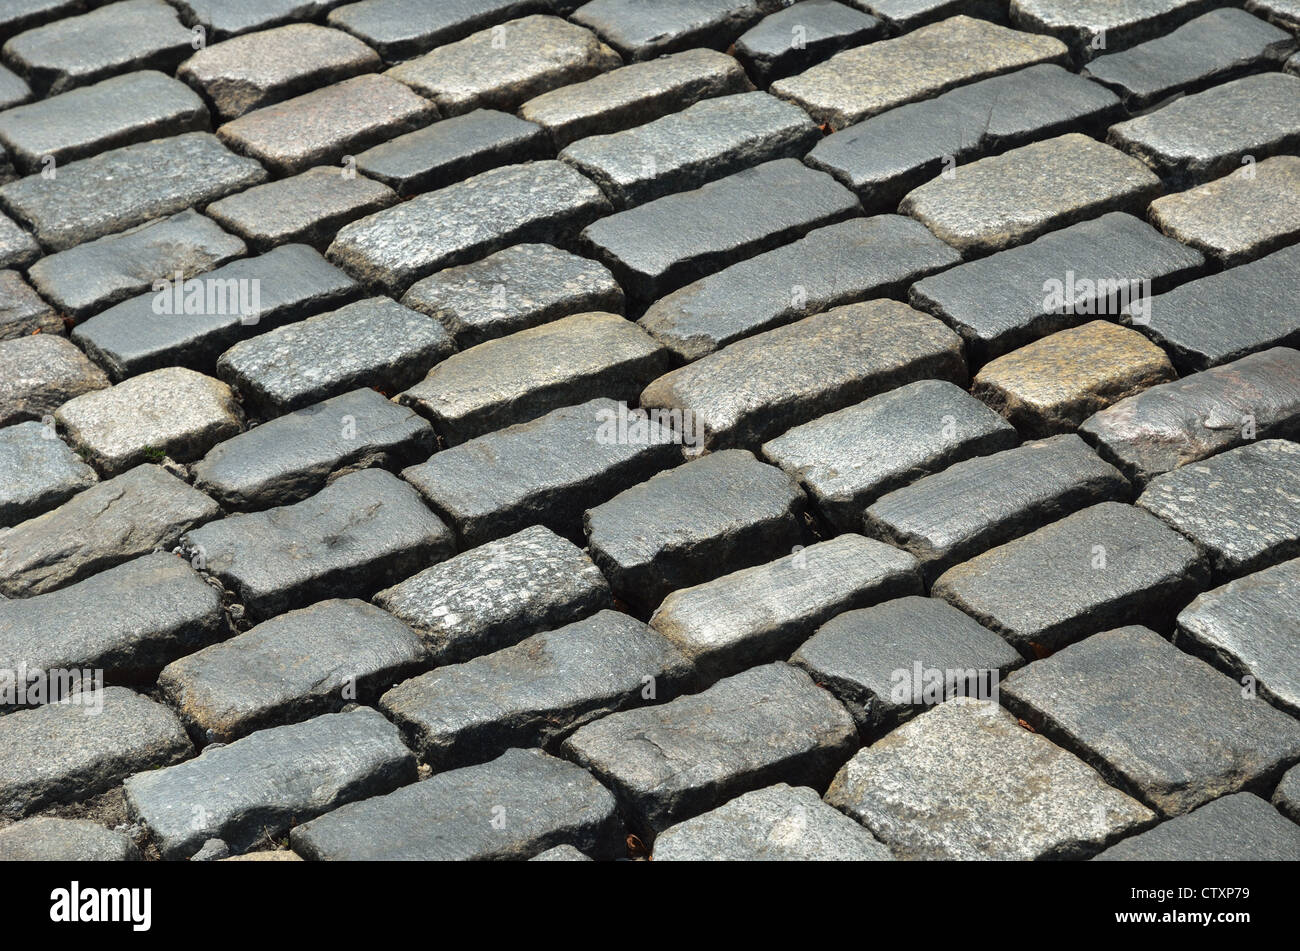 Close-up of old block pavement - Stock Image